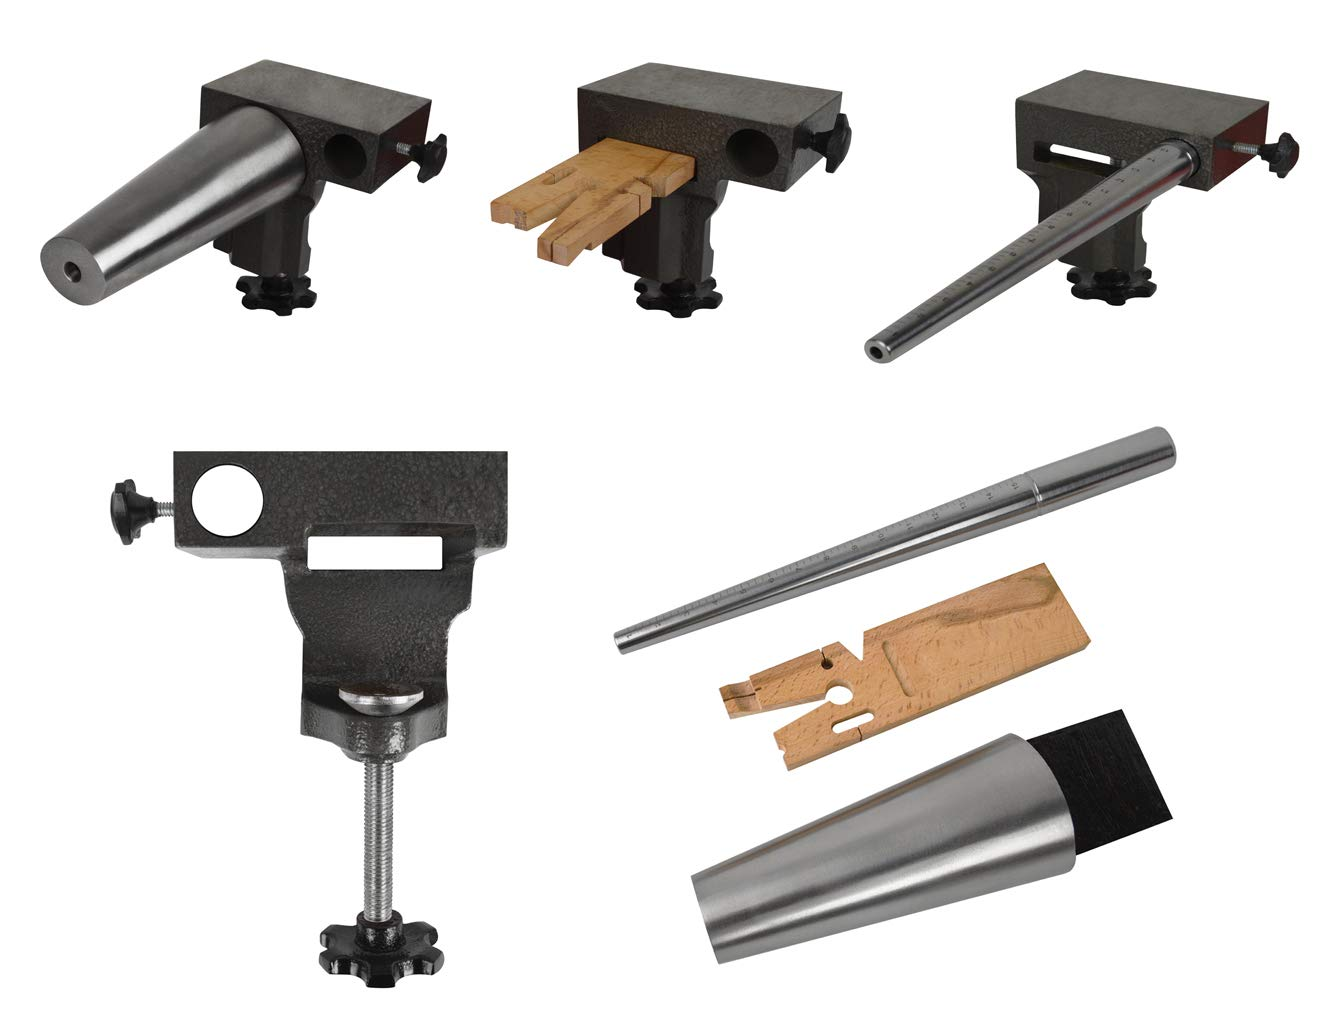 4-Piece Bench Anvil Combination V-Slot Bench Pin Ring Oval Bracelet Mandrel Vise Jewelry Making Metal Forming Kit by PMC Supplies LLC